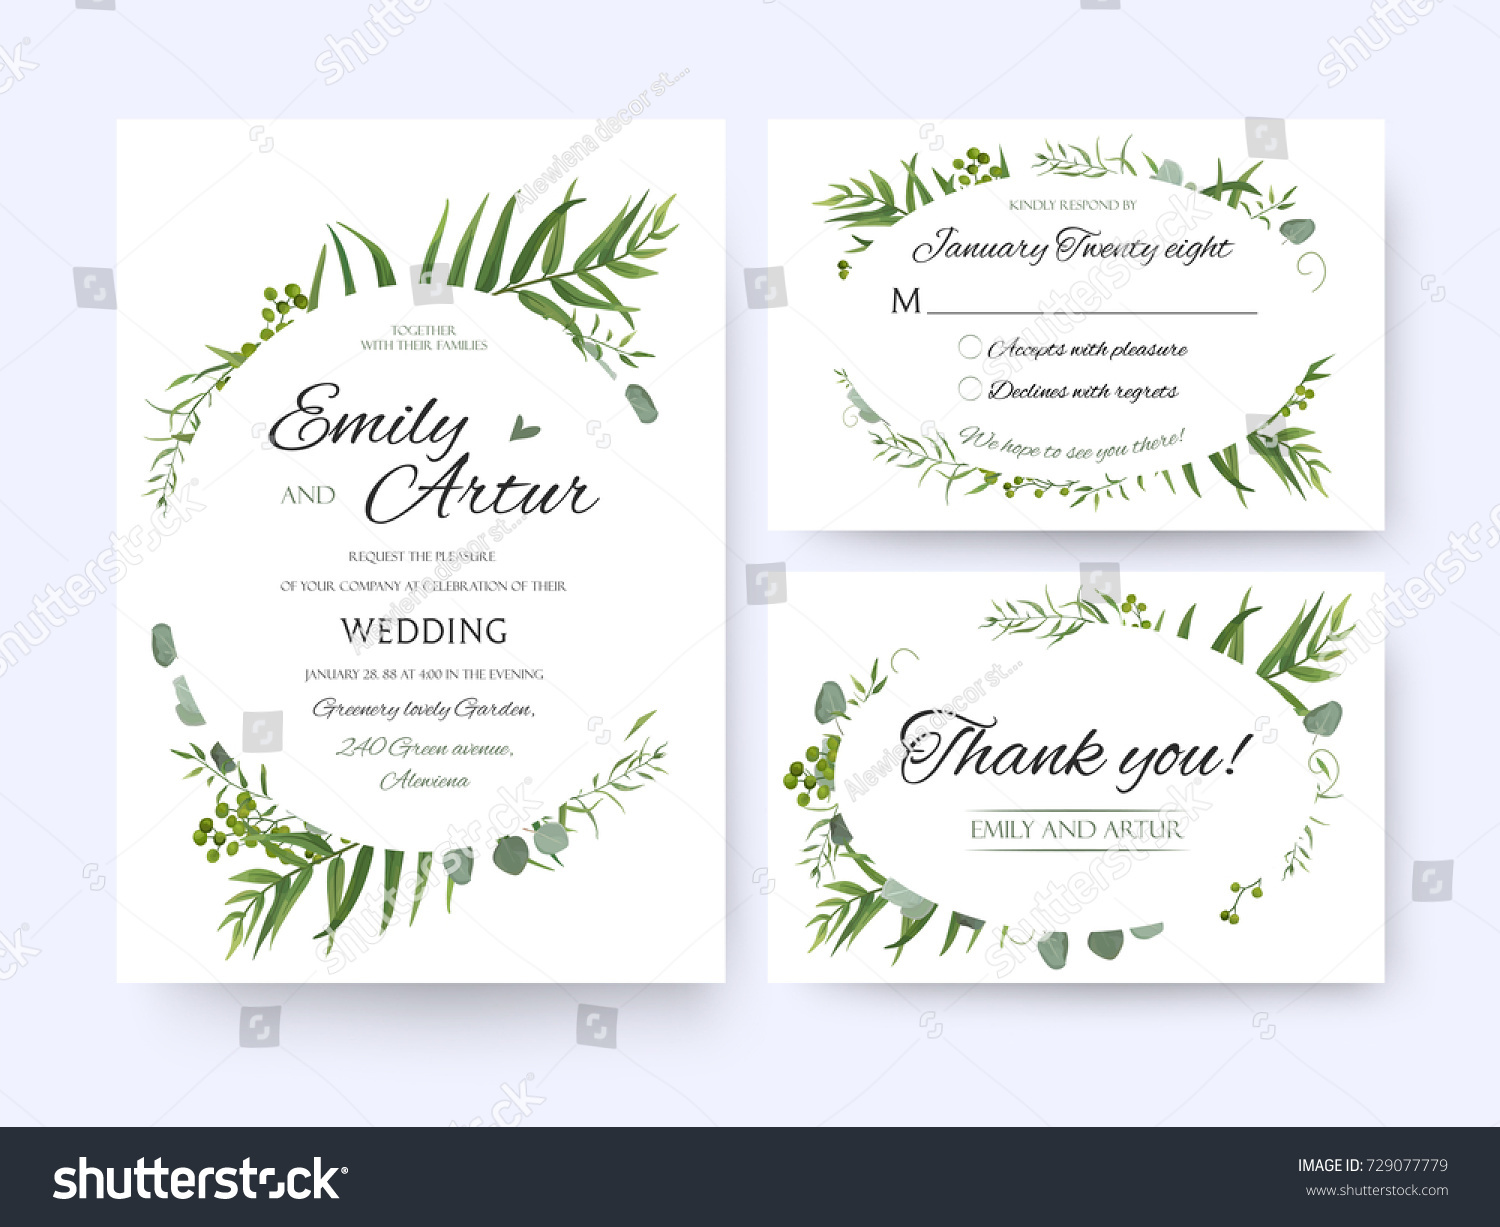 wedding invite invitation rsvp thank you card vector floral greenery design forest fern frond - Wedding Invitation Rsvp